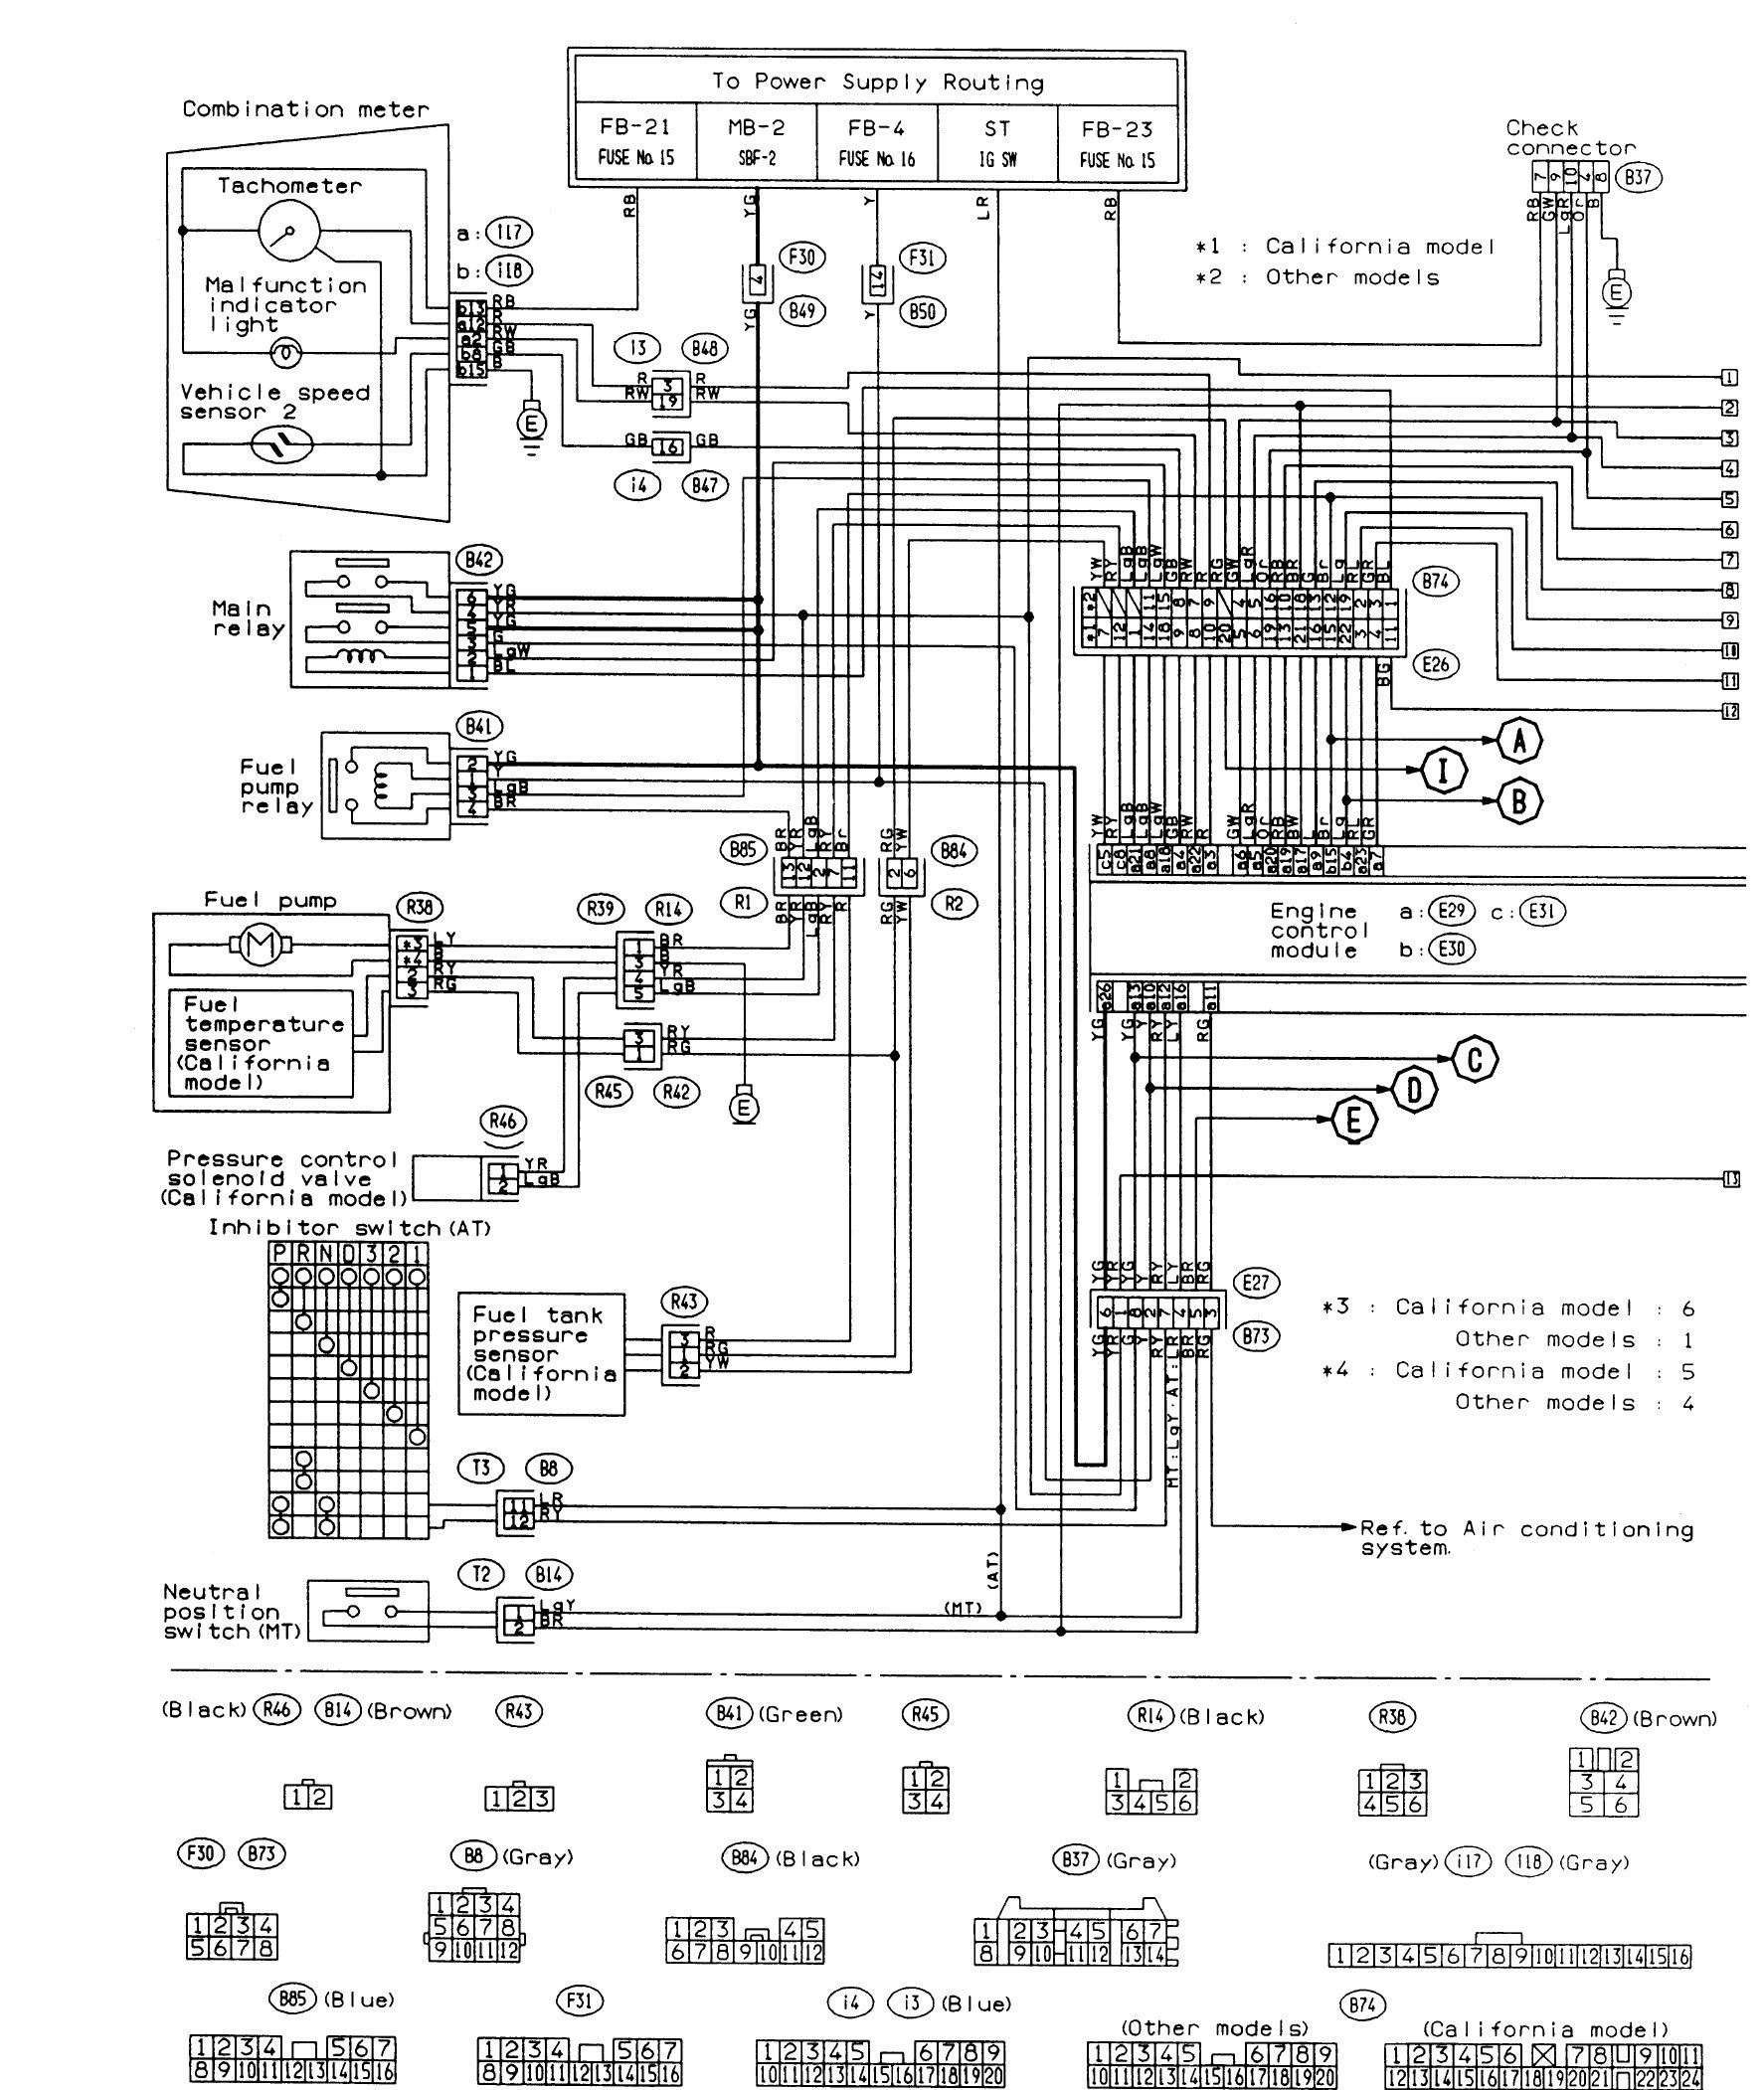 Subaru Liberty Wiring Diagram 1995 Wiring Diagrams Brain River Brain River Mumblestudio It